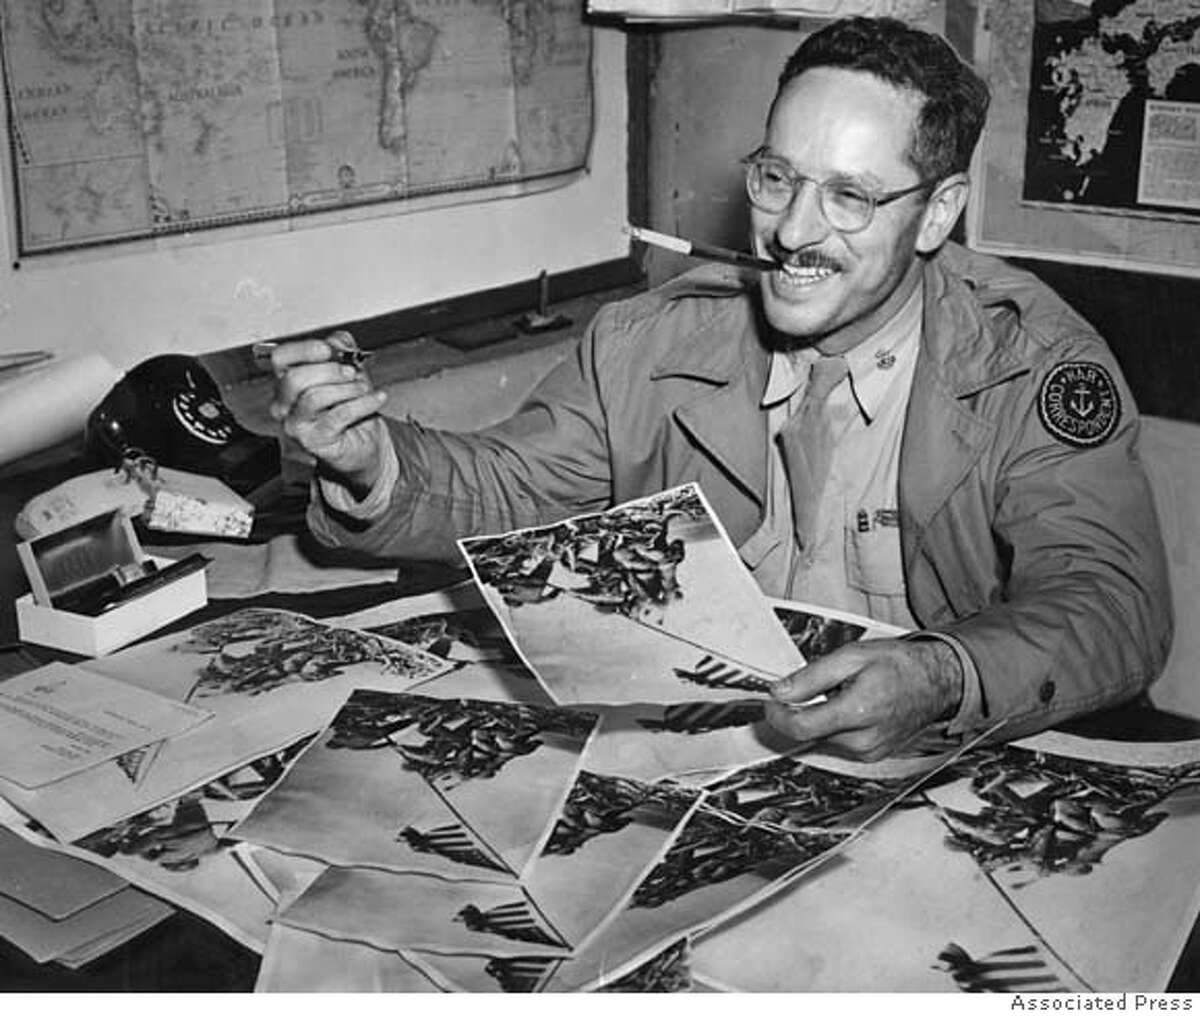 Chronicle phtographer Joe Rosenthal, who won a Pulitzer for his famous Iwo Jima flag raising photo in 1945. Photo credit: Associated Press